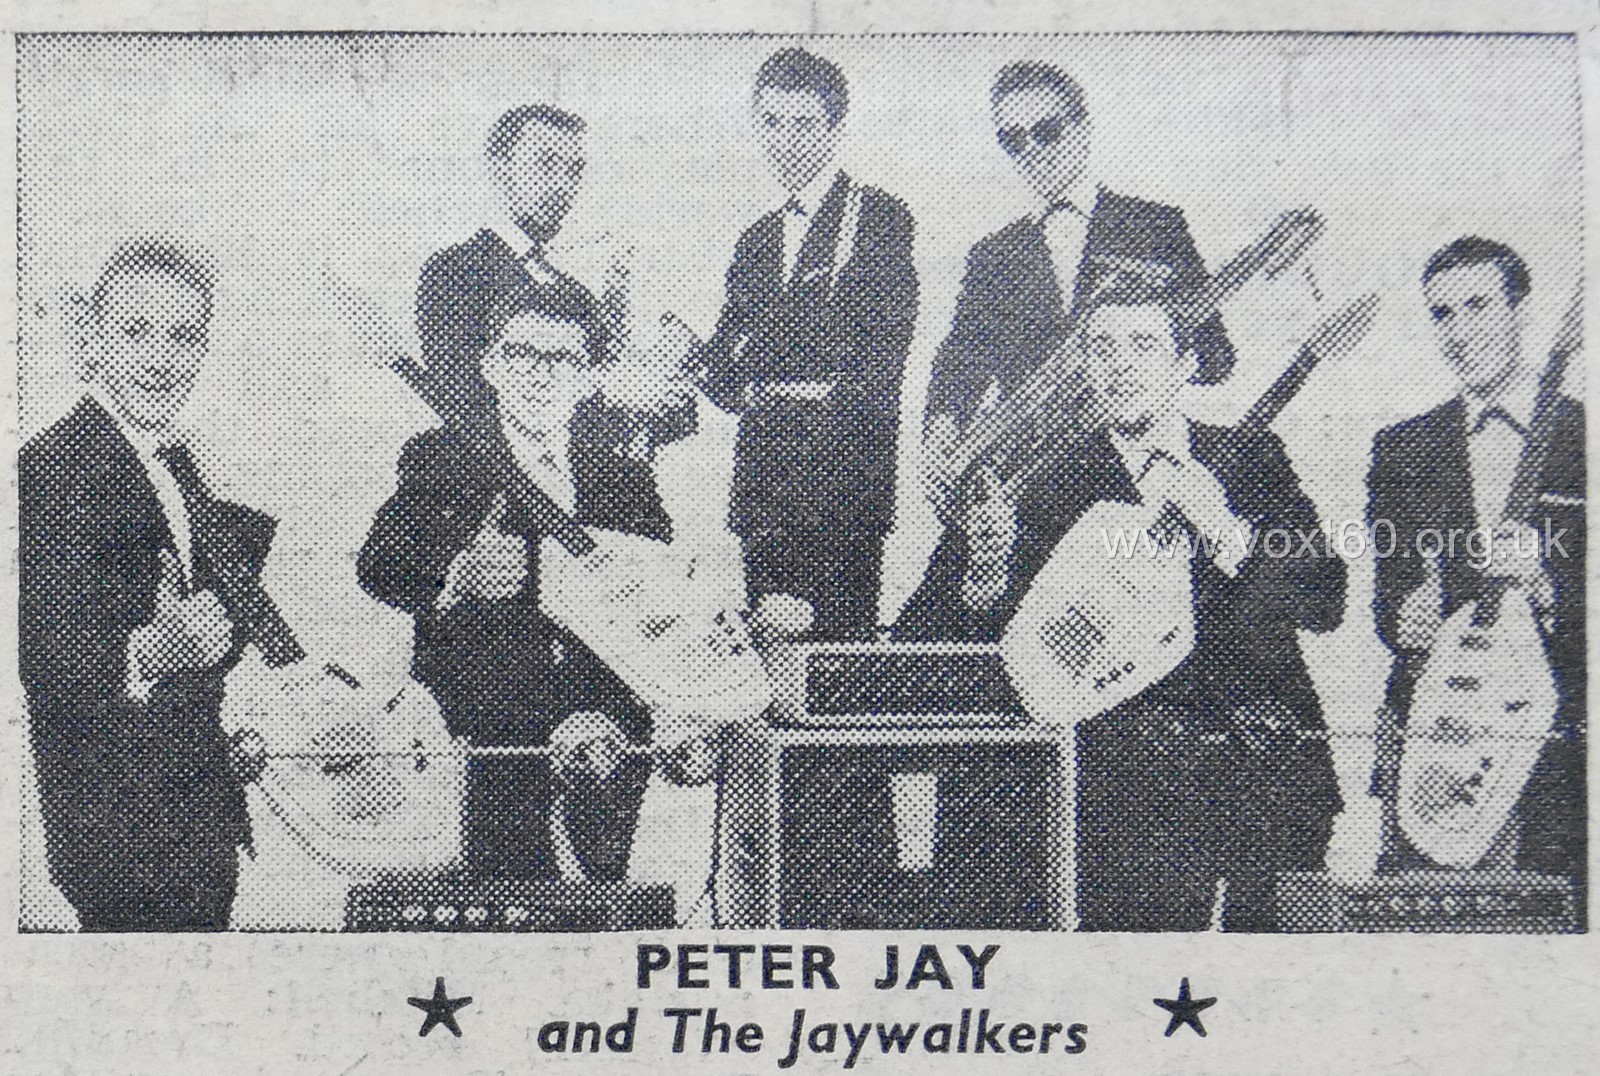 Peter Jay and the Jaywalkers